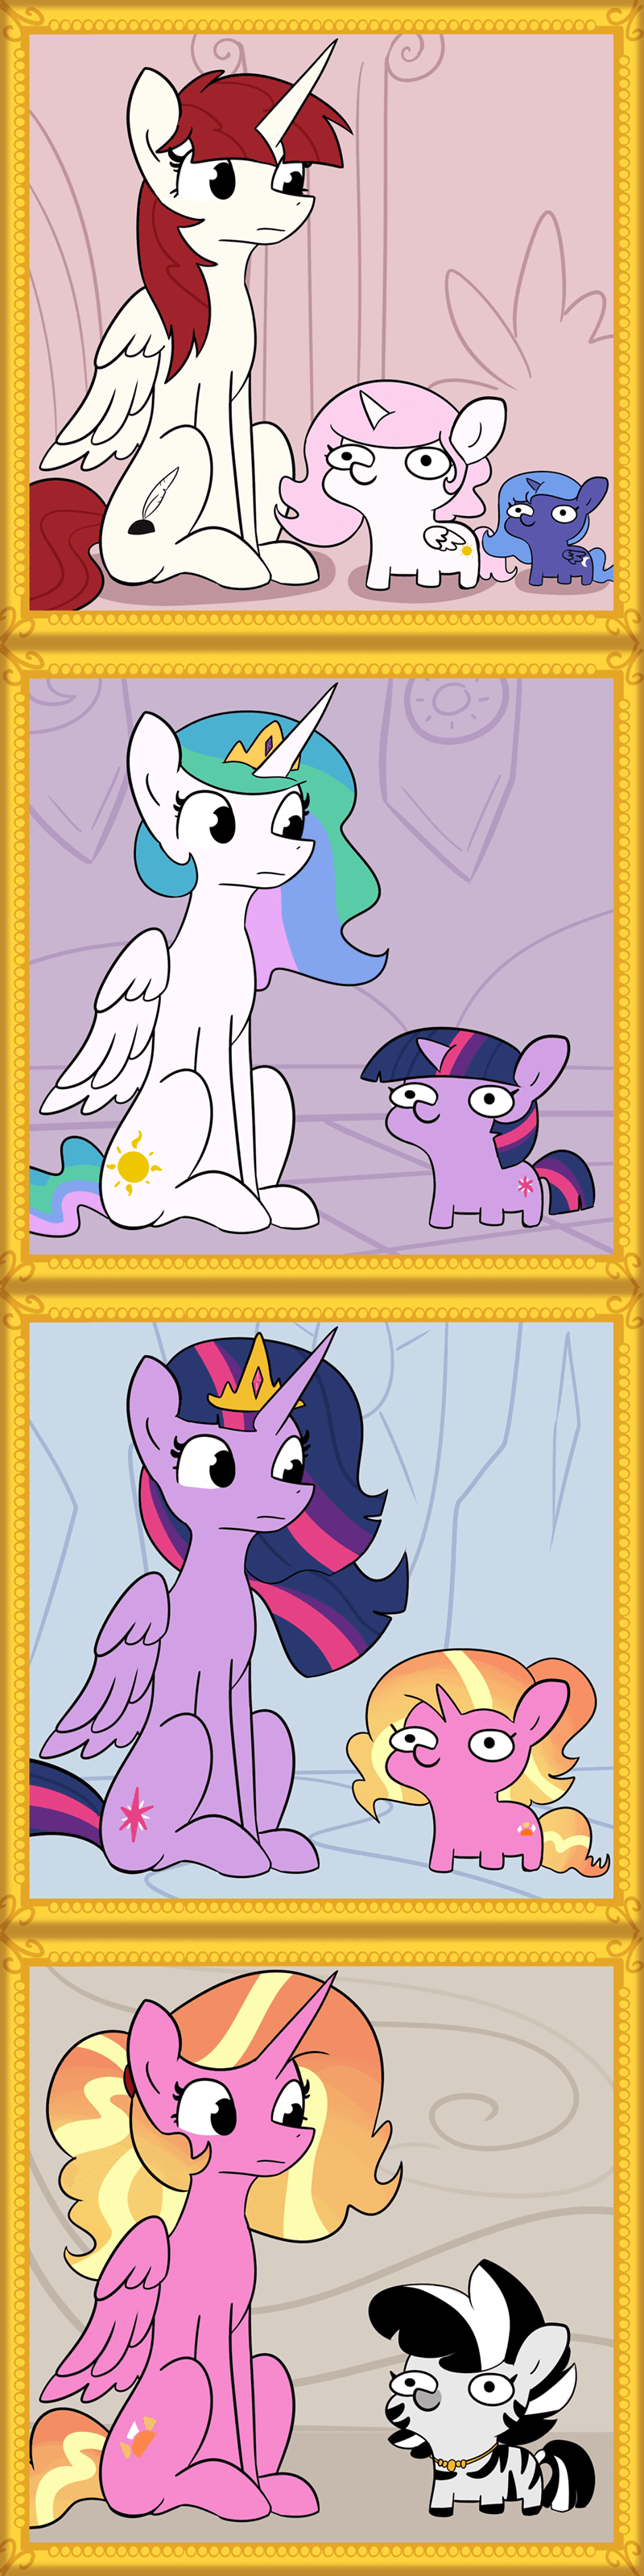 zebra OC tj pones twilight sparkle luster dawn fausticorn princess luna princess celestia - 9525788928